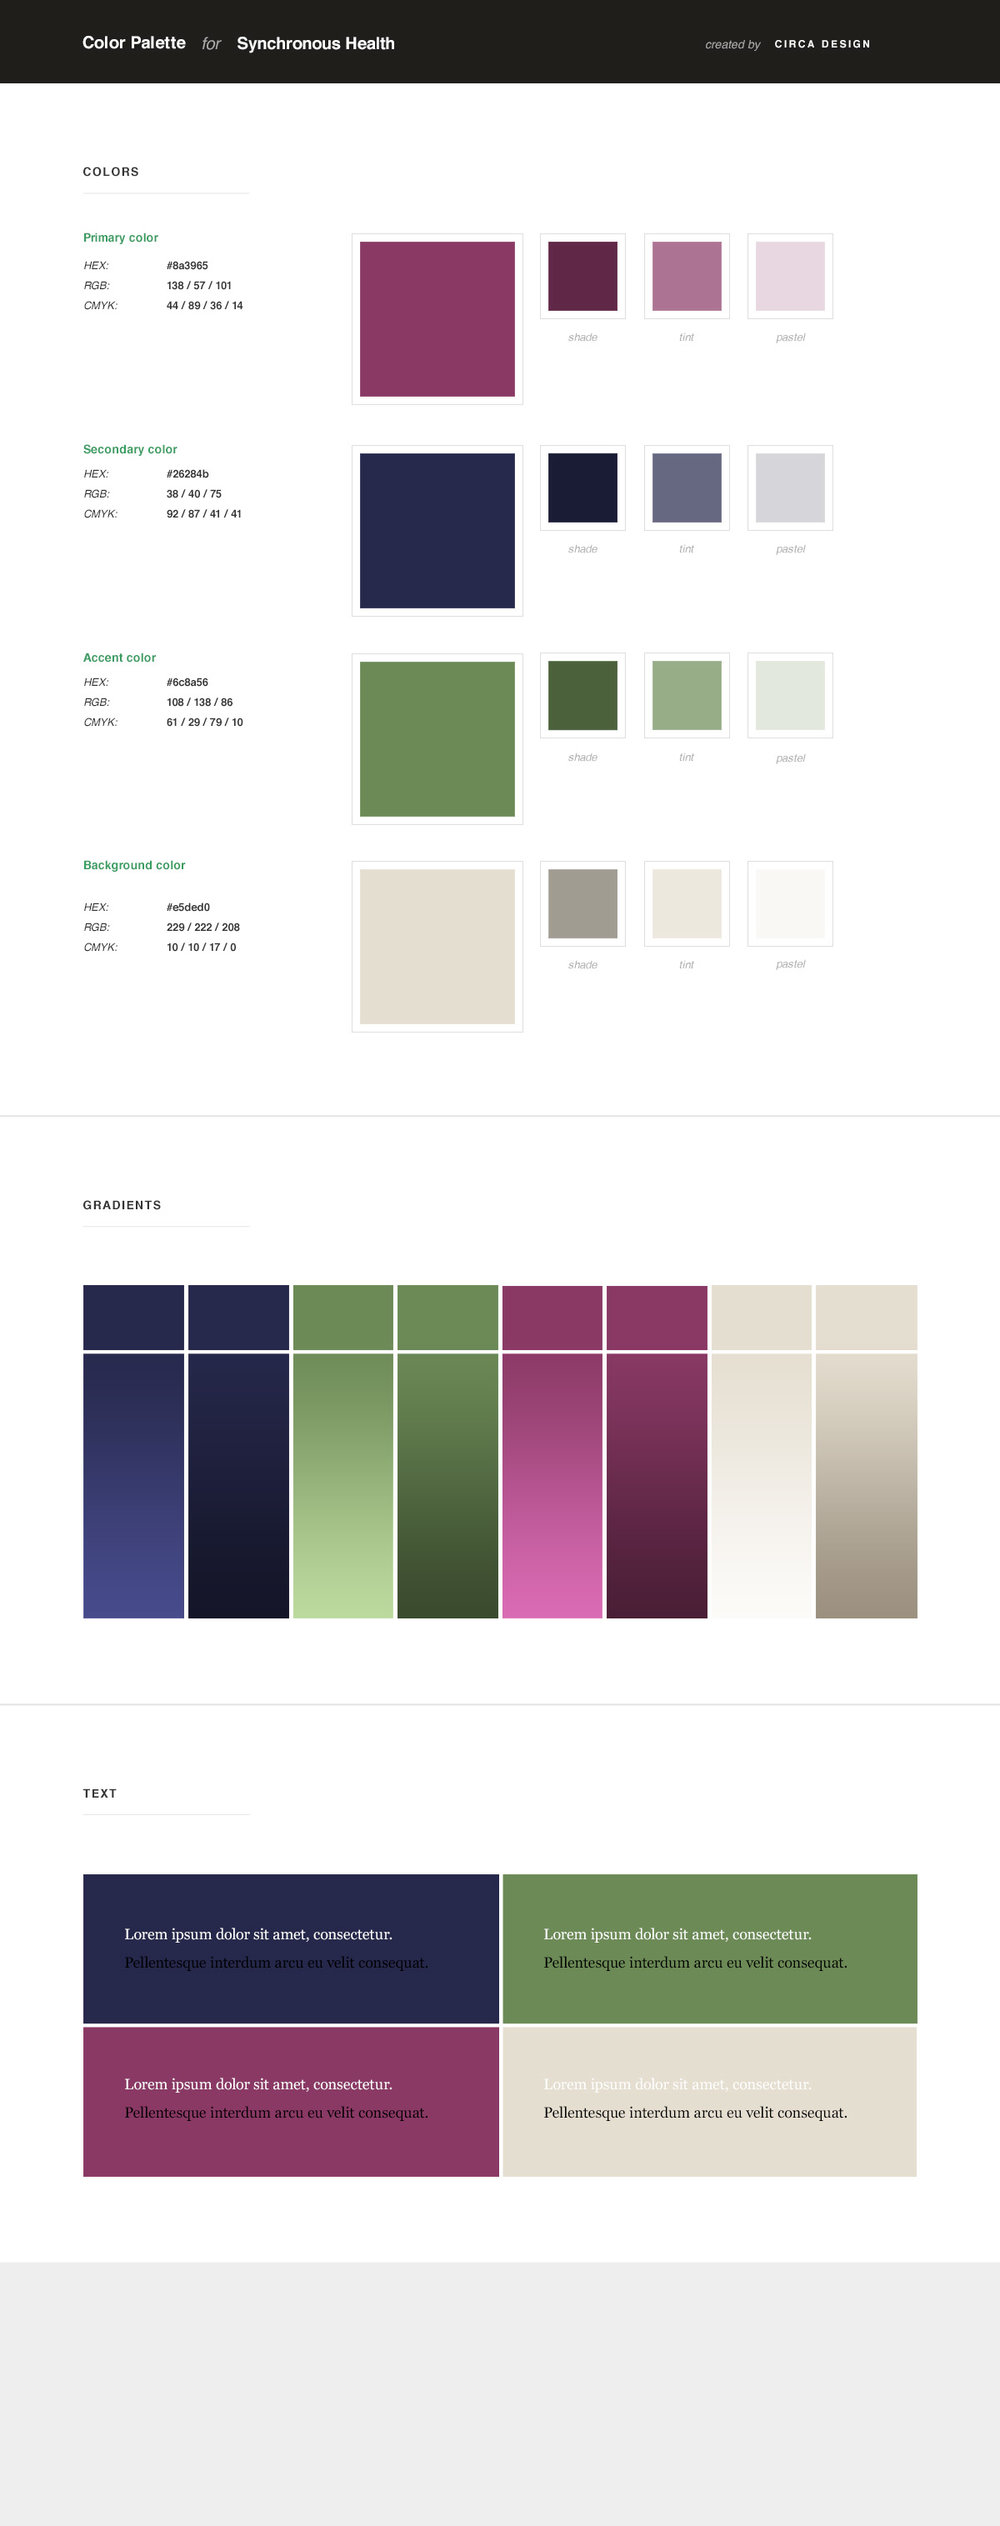 Synchronous Health Color Palette by Circa Design